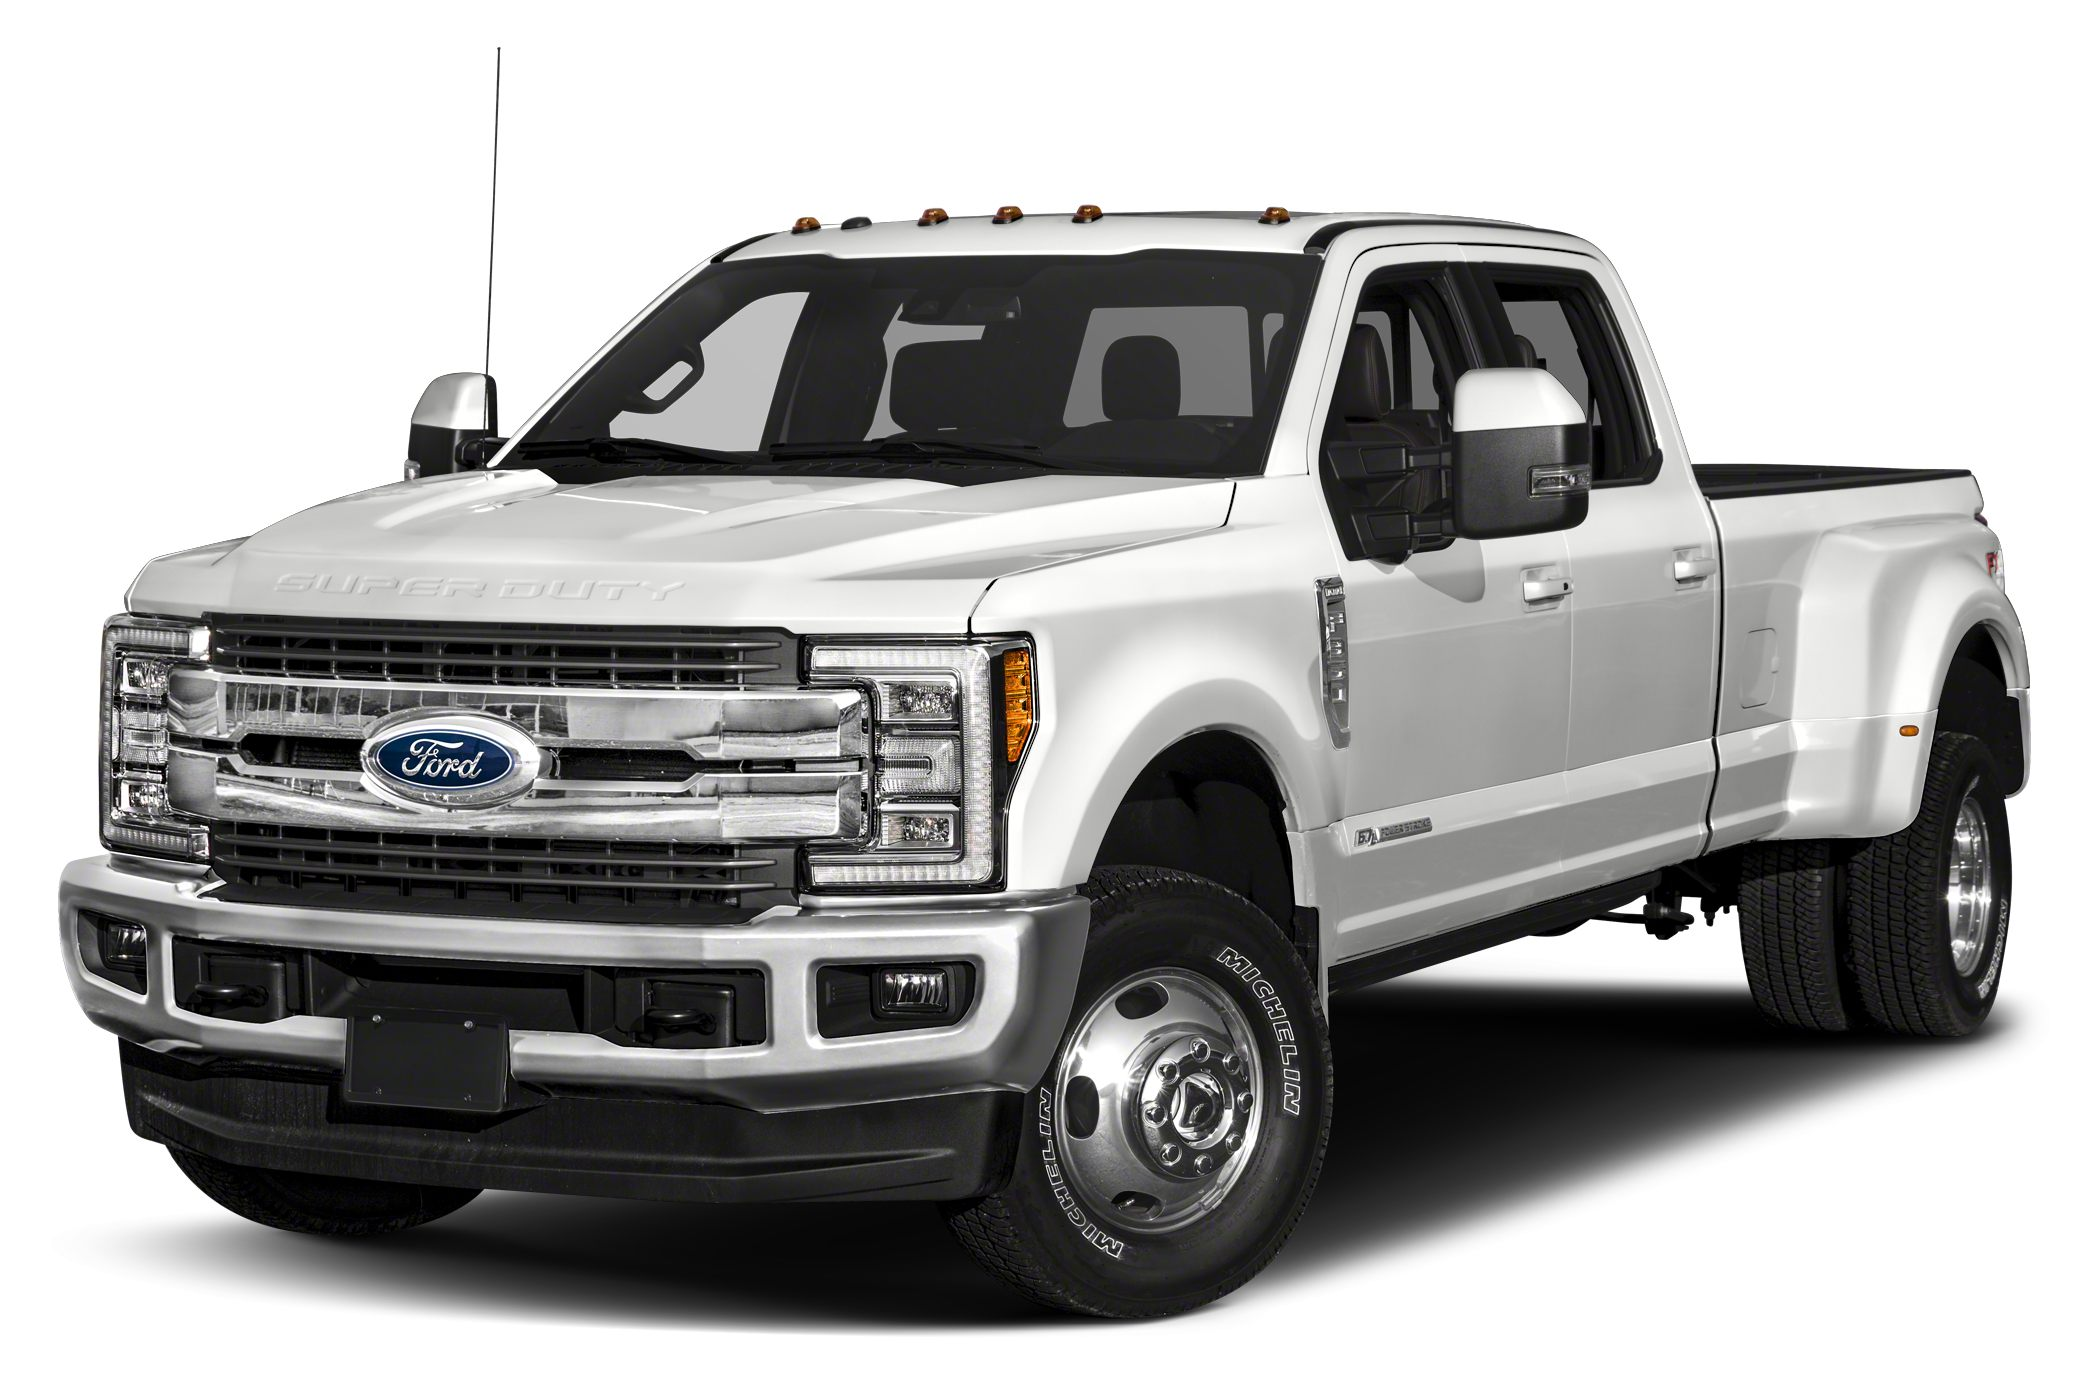 2018 Ford F-350 King Ranch 4x2 SD Crew Cab 8 ft. box 176 in. WB DRW Pictures